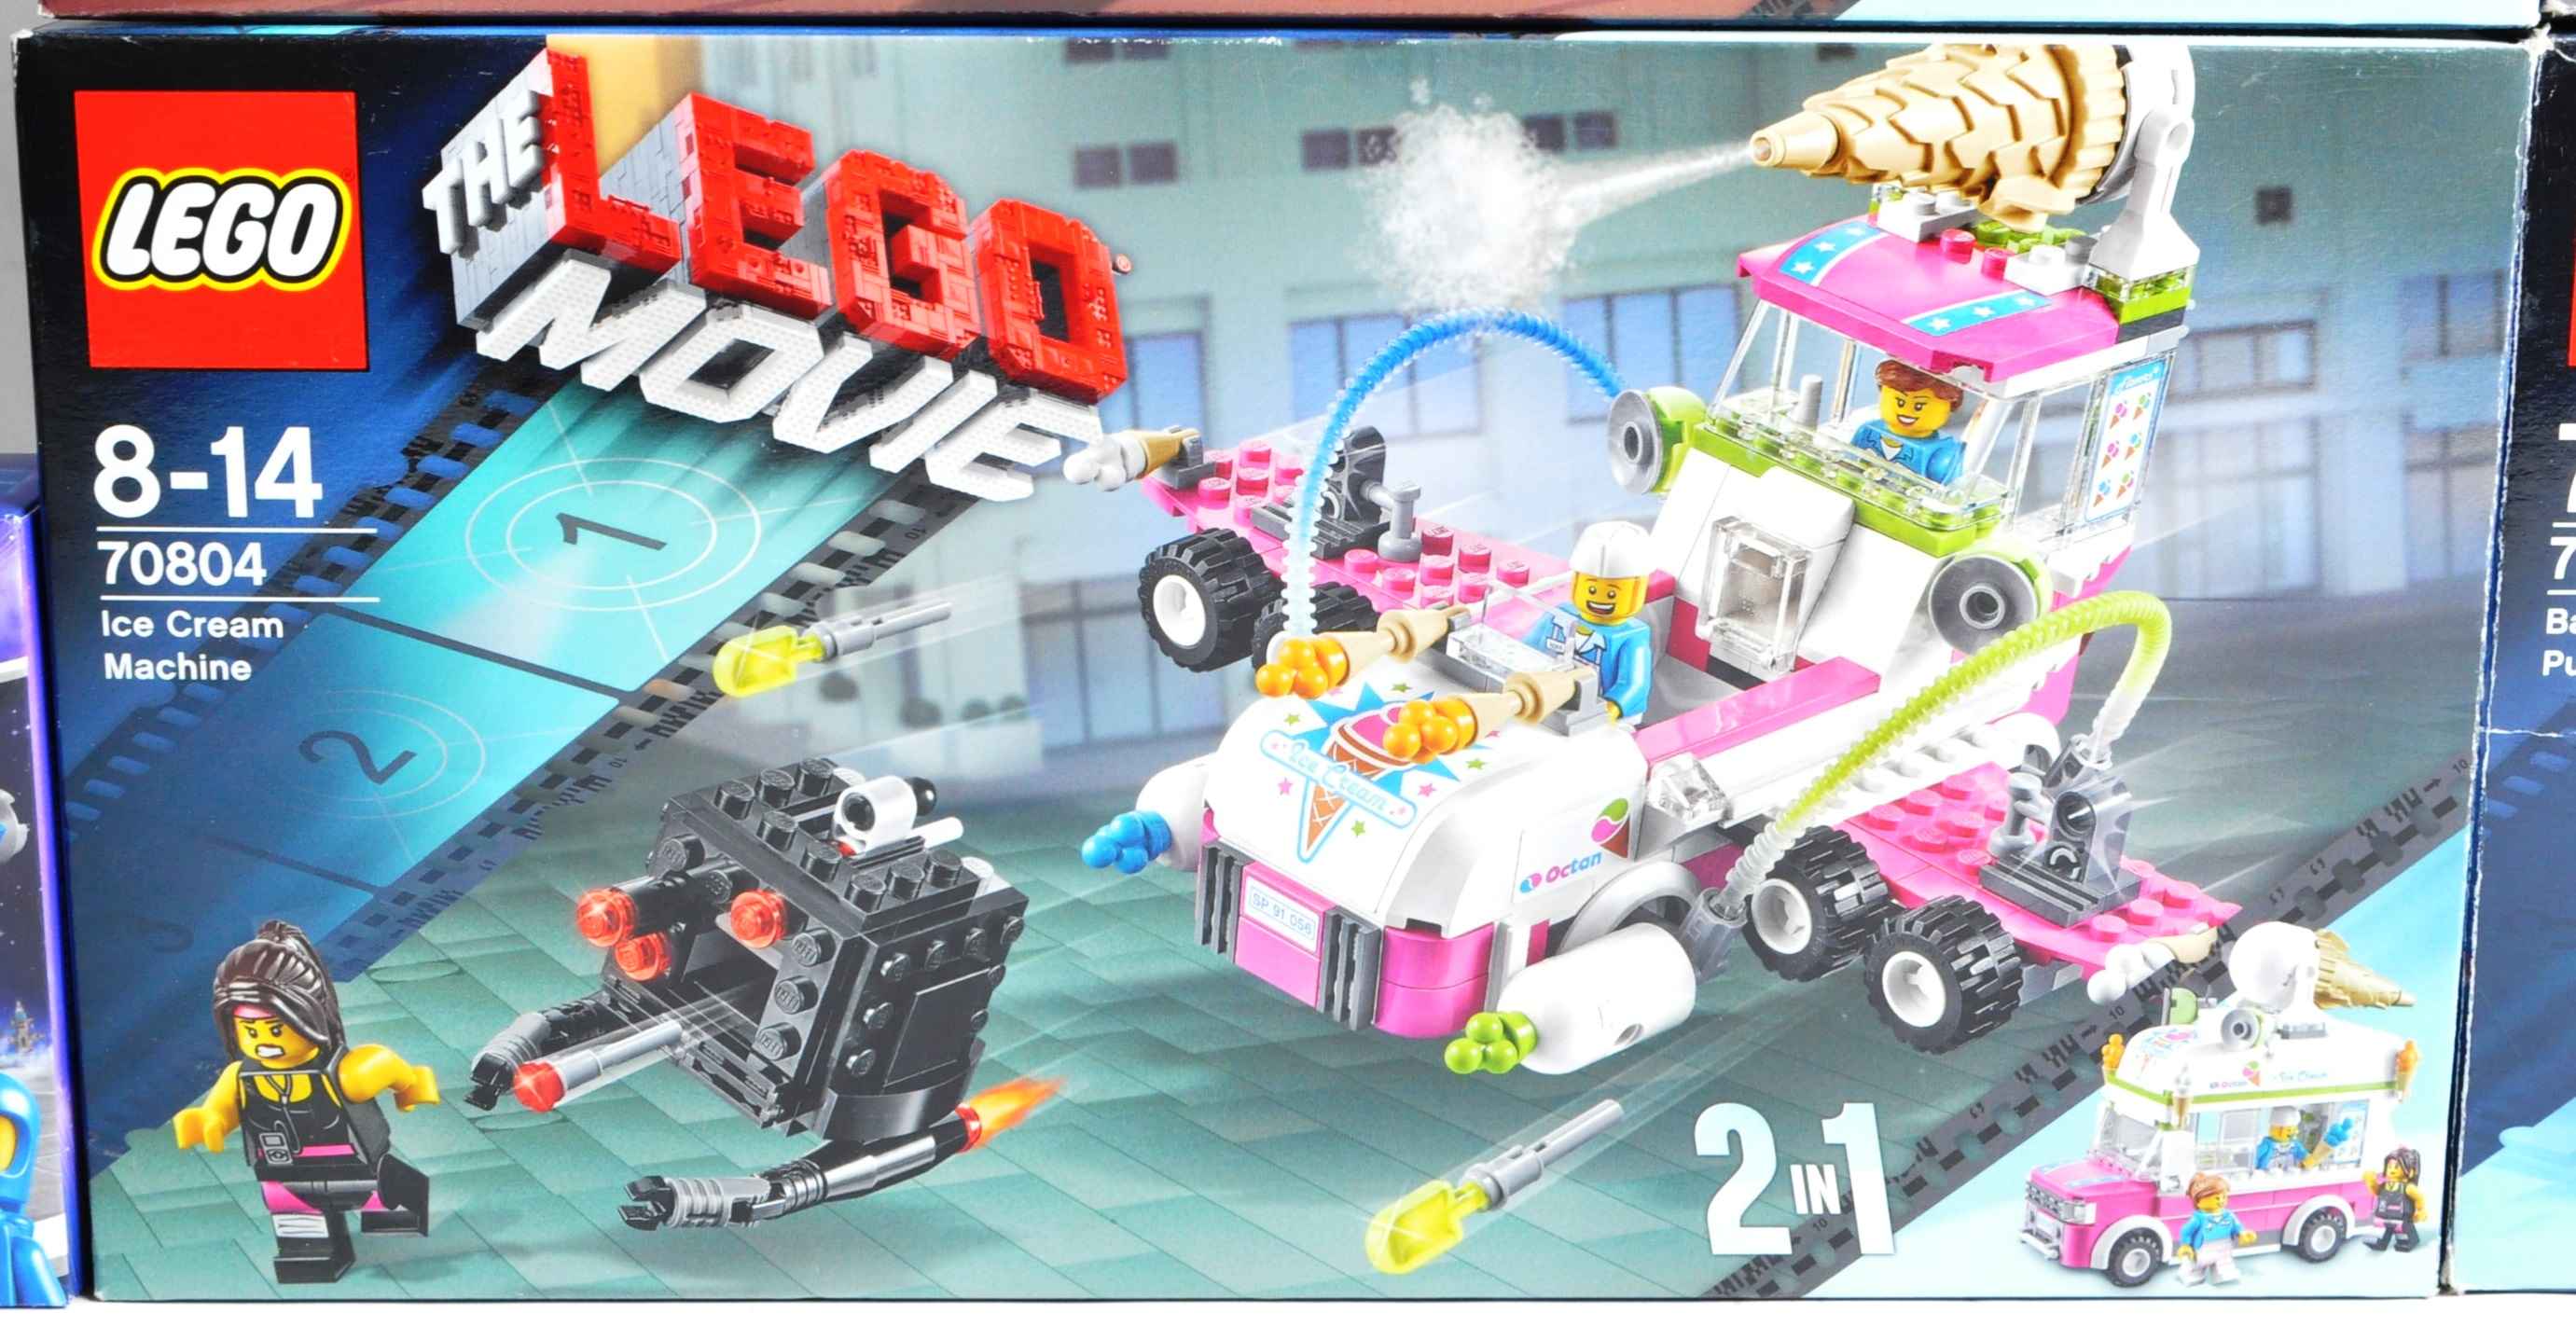 LEGO SETS - THE LEGO MOVIE - COLLECTION OF X7 LEGO MOVIE SETS - Image 4 of 17